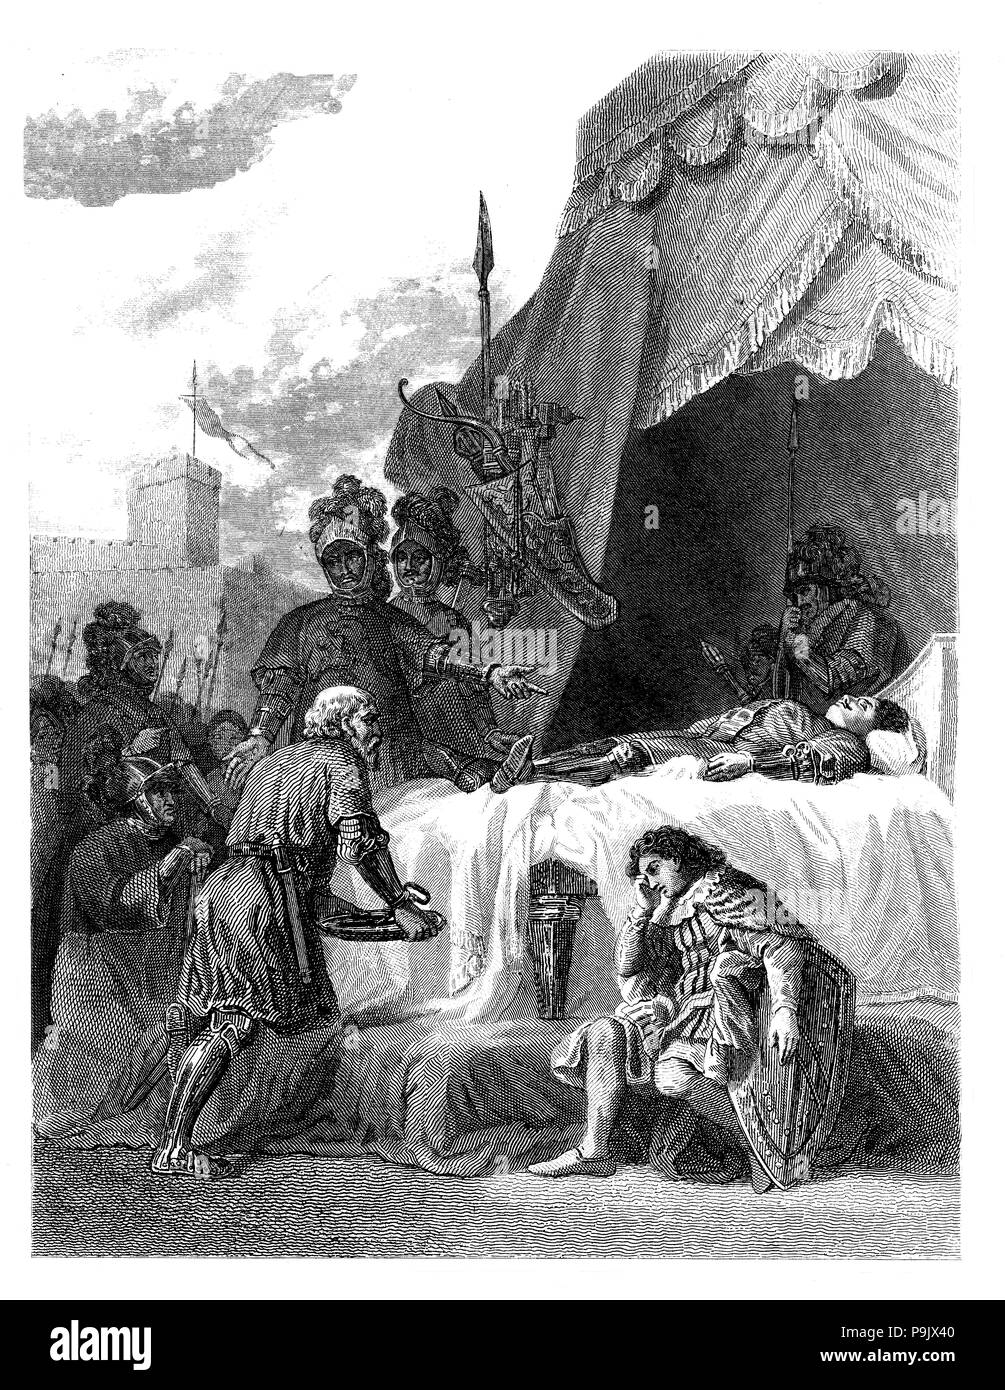 Funeral of Bertran Duguesclin (1320-1380), French marshal, engraving from 1853. - Stock Image